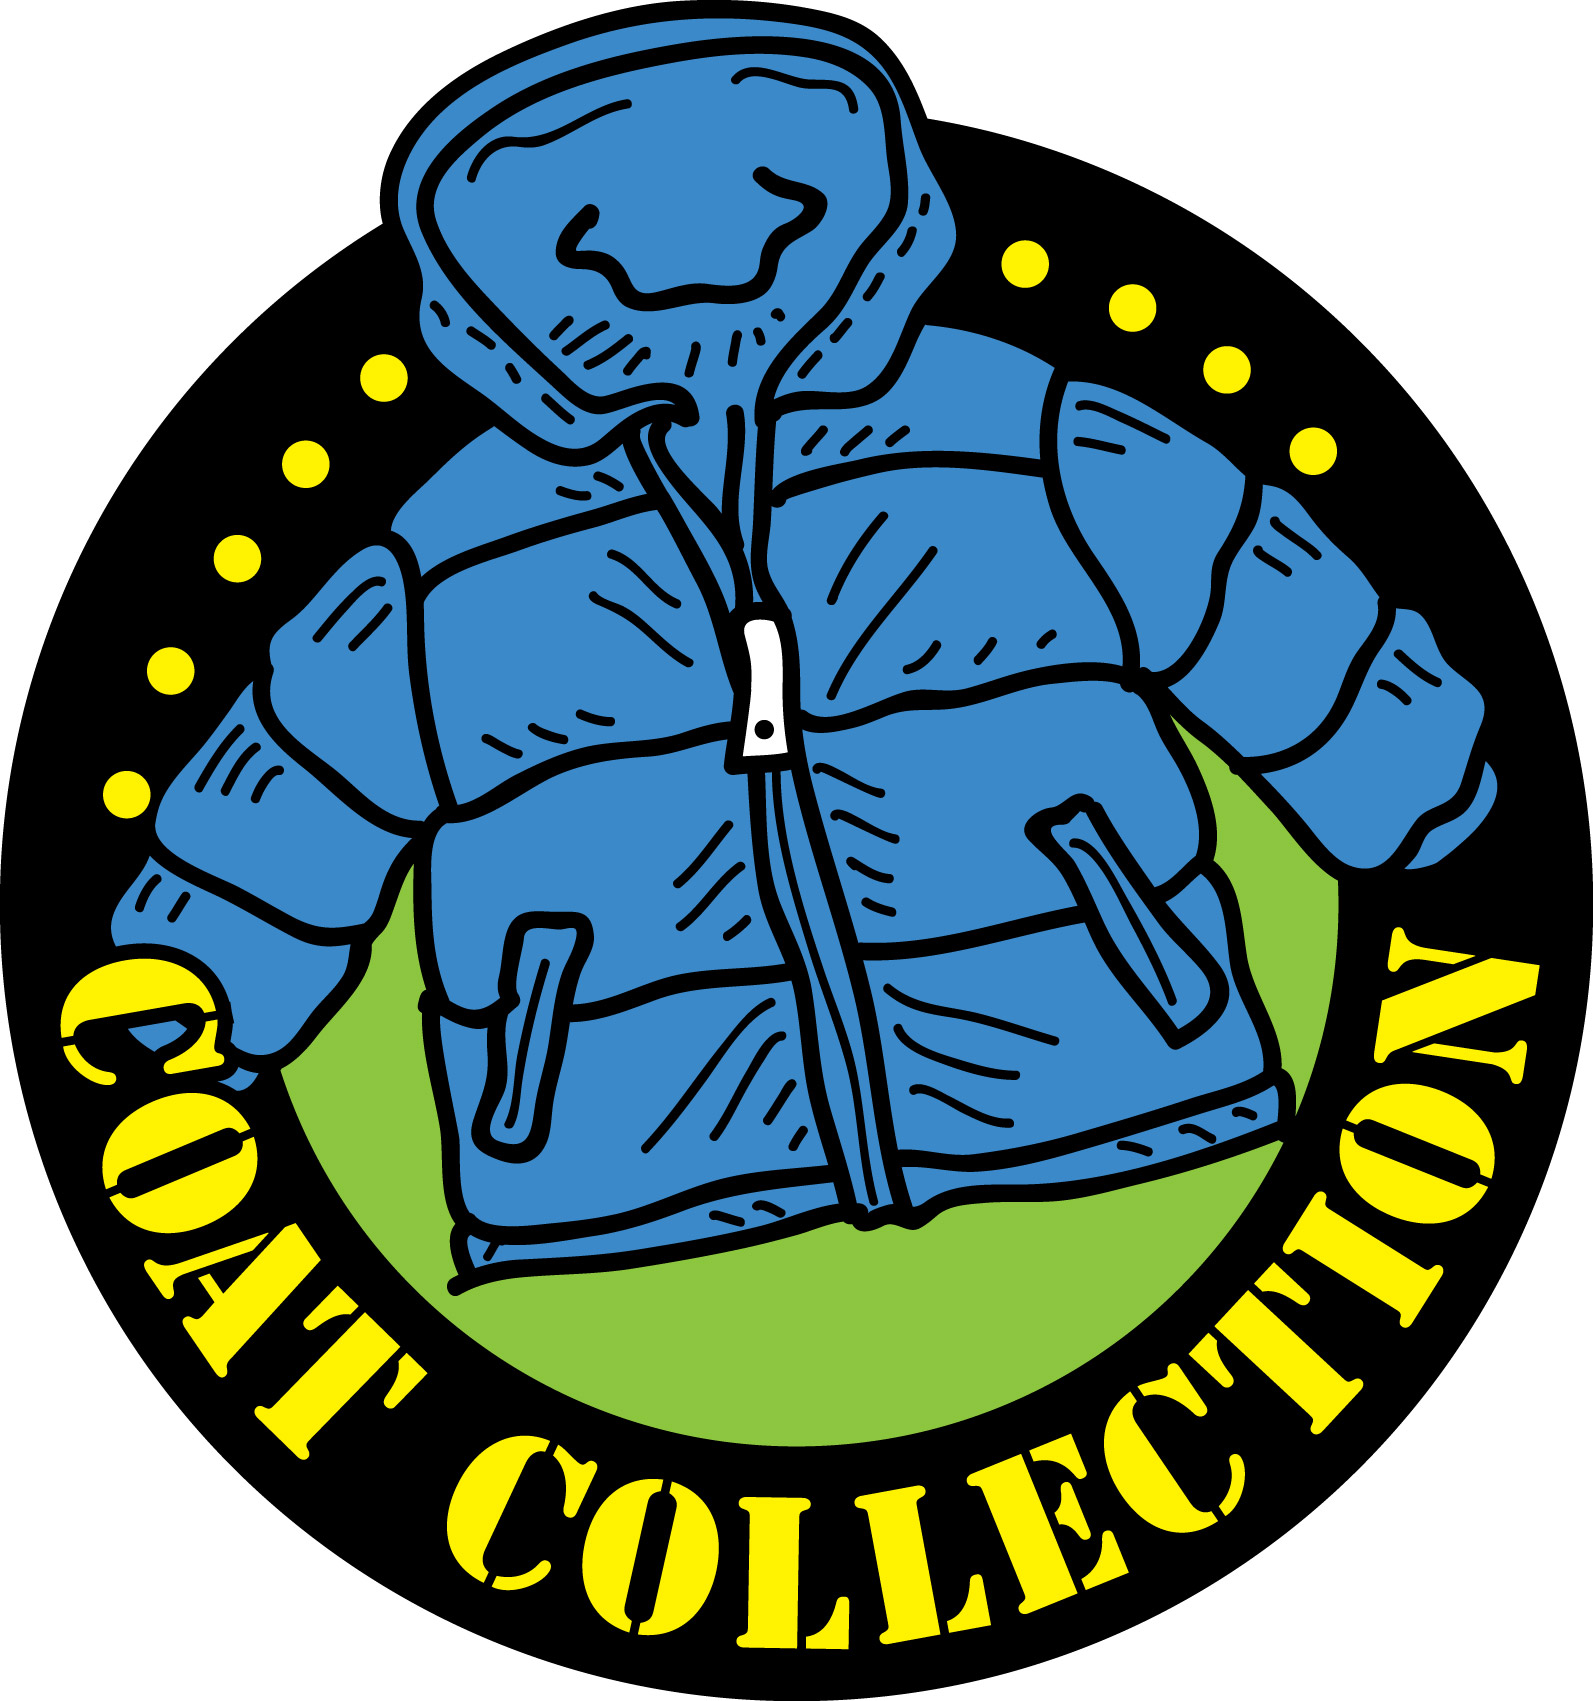 Coat Drive For Holy Trinity Thrift Shop   St  George S Episcopal